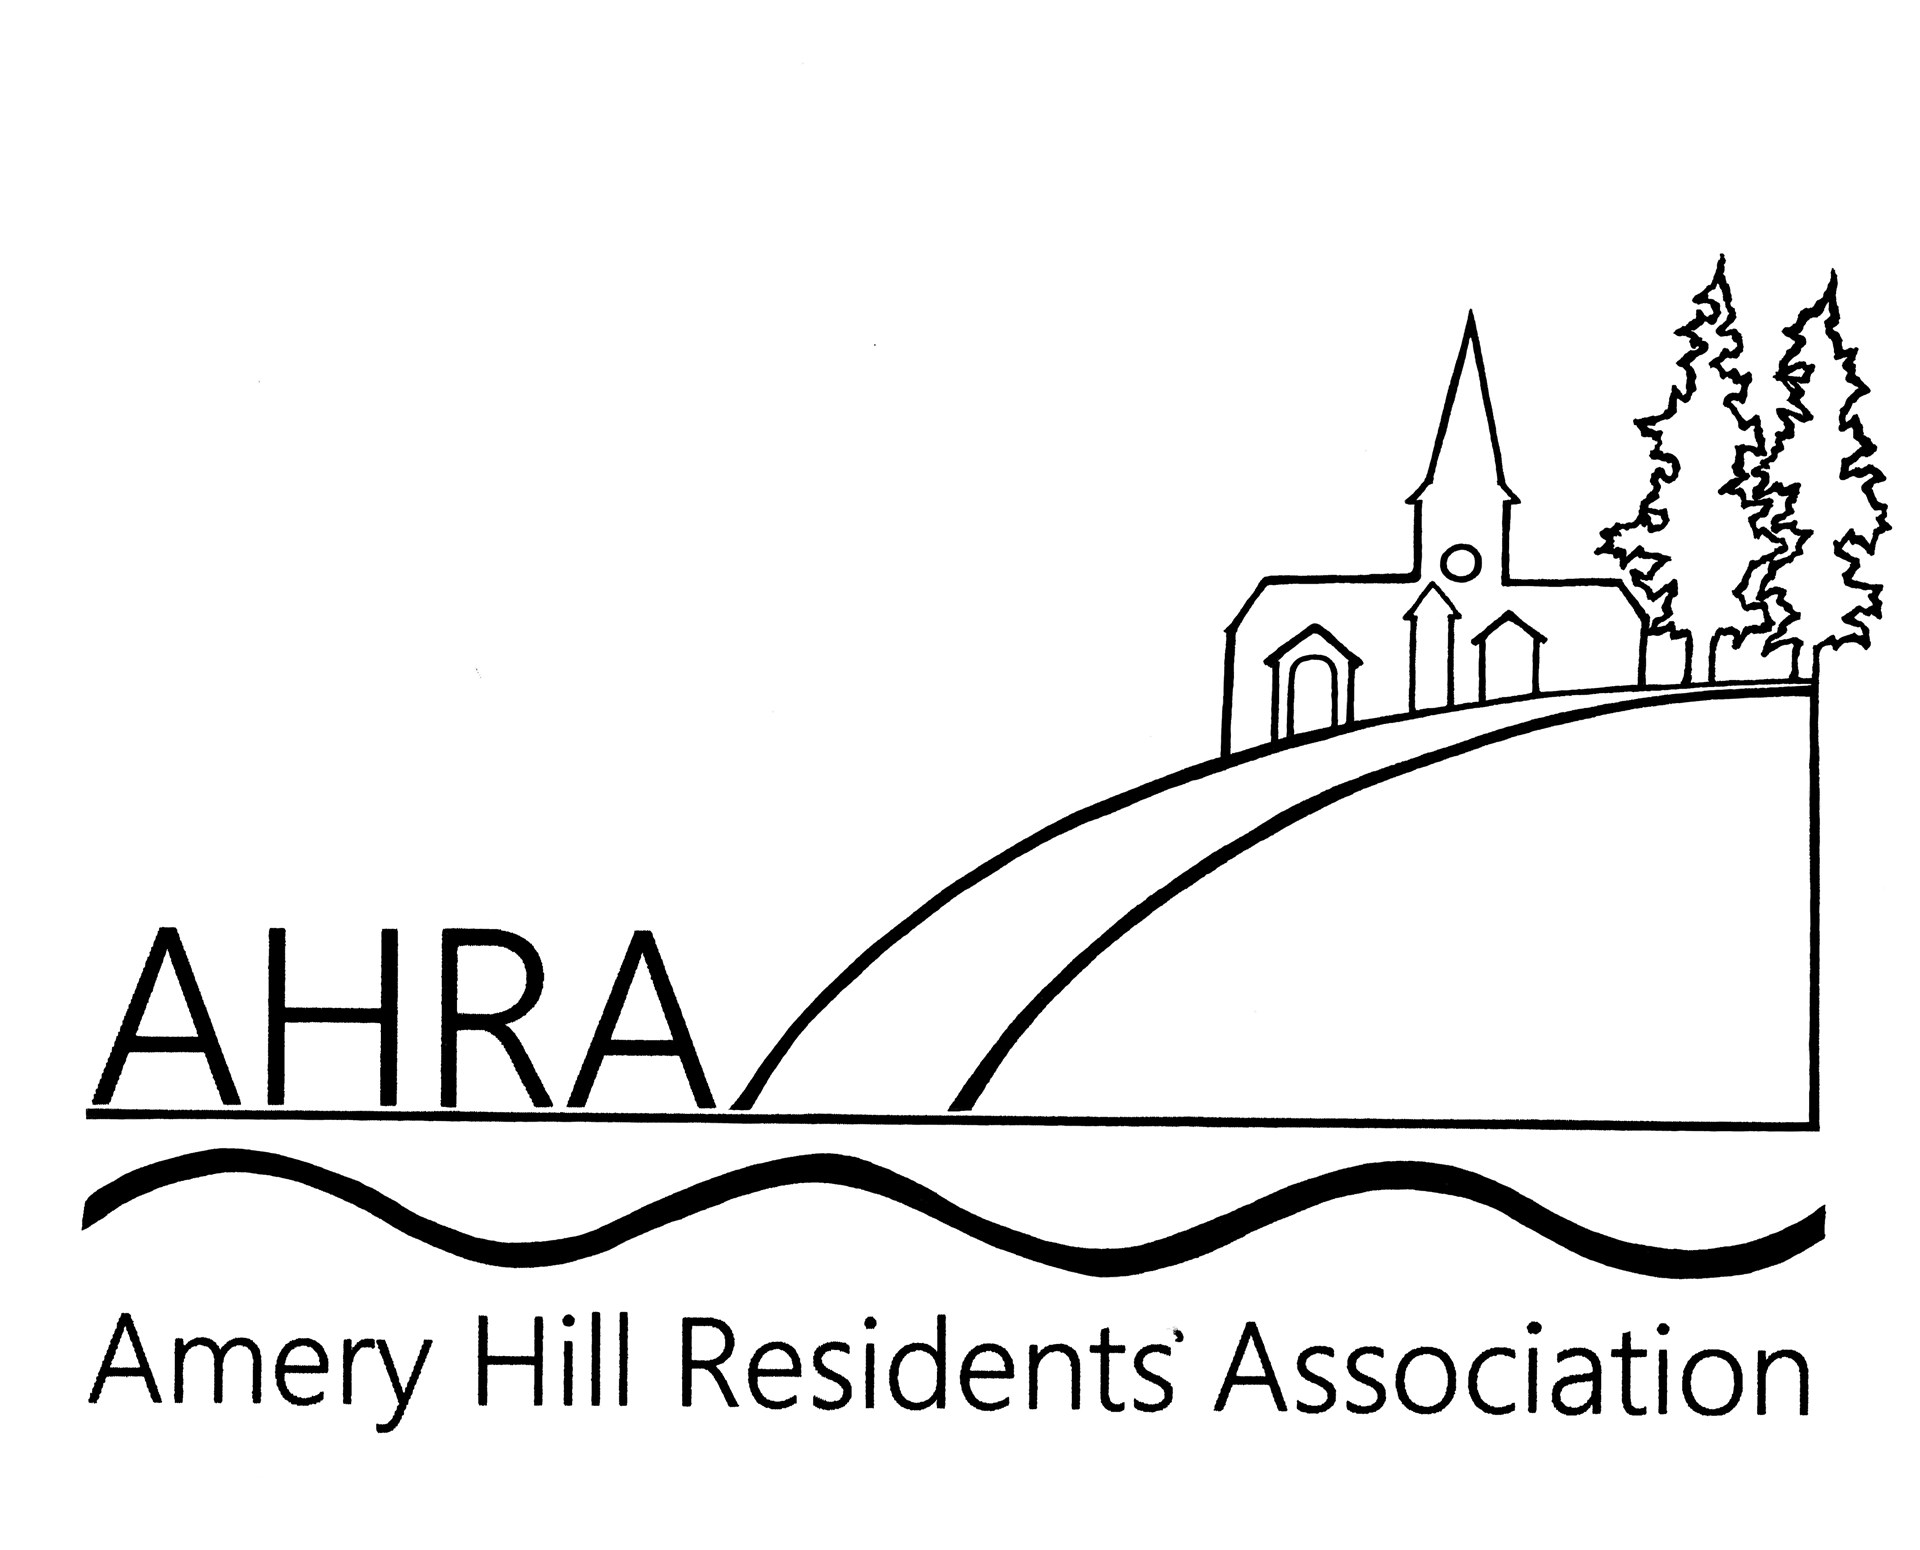 AHRA Amery Hill Residents' Association